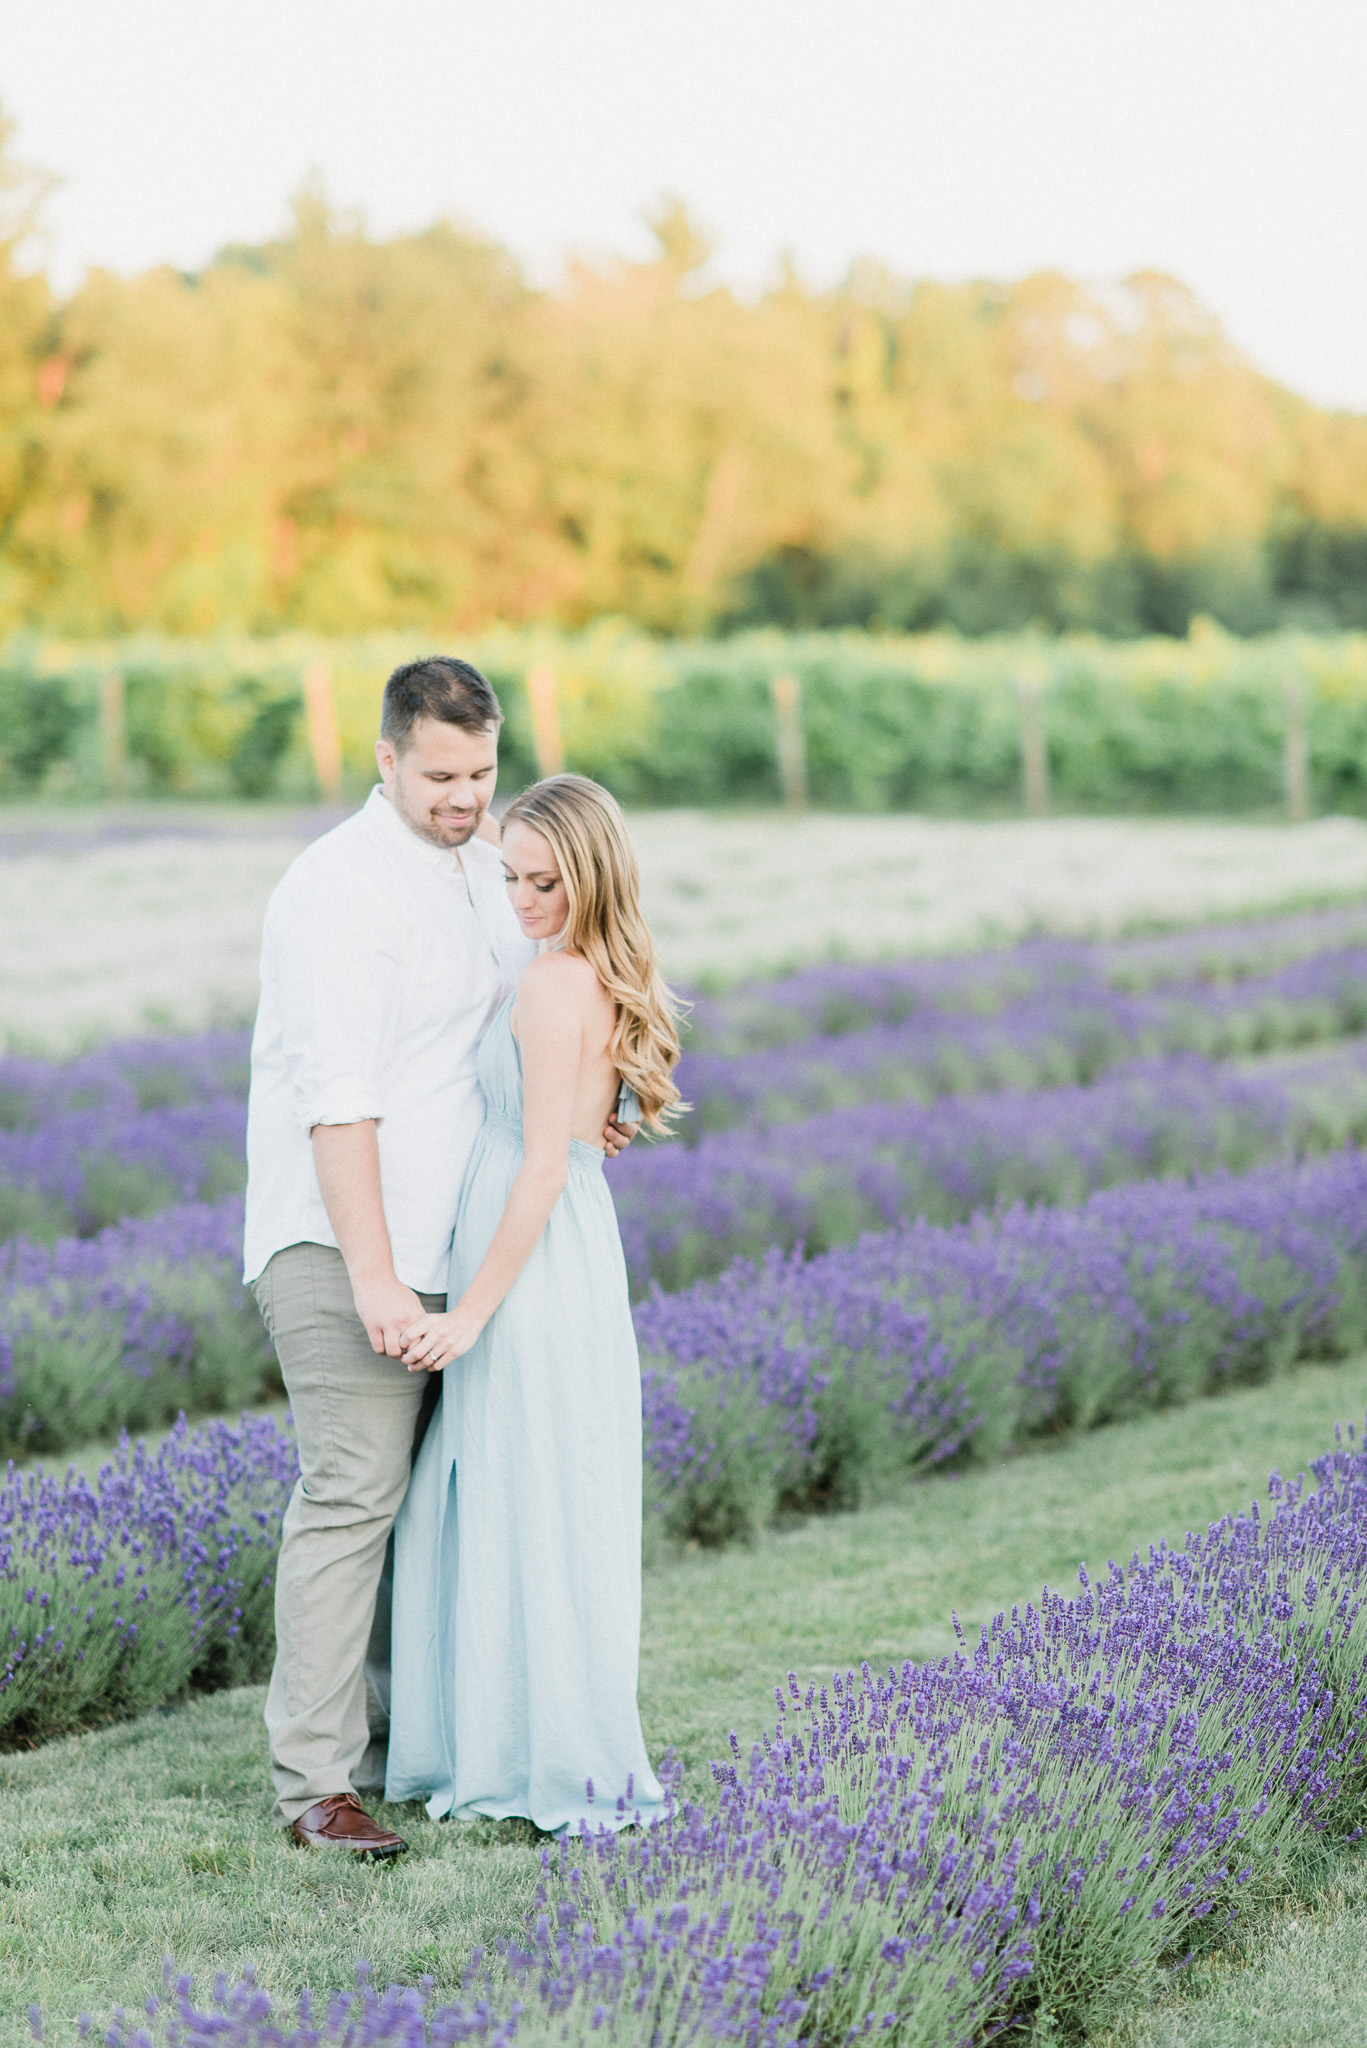 Gorgeous bride-to-be in light blue maxi dress, photographed by Jenn Kavanagh Photography.